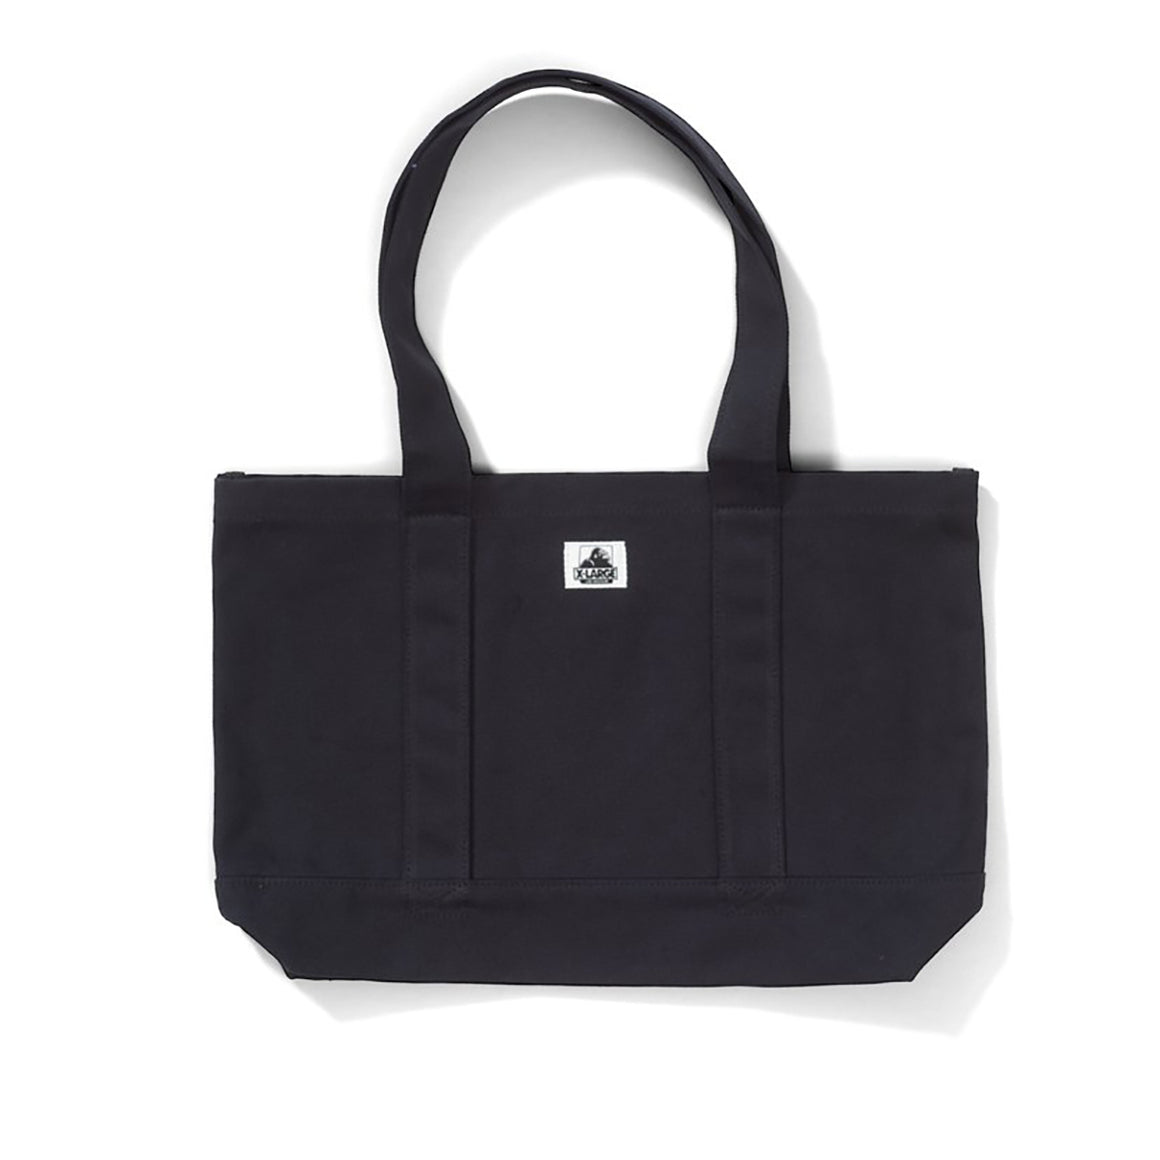 OG Tote bag, Accessories  - XLarge Brand